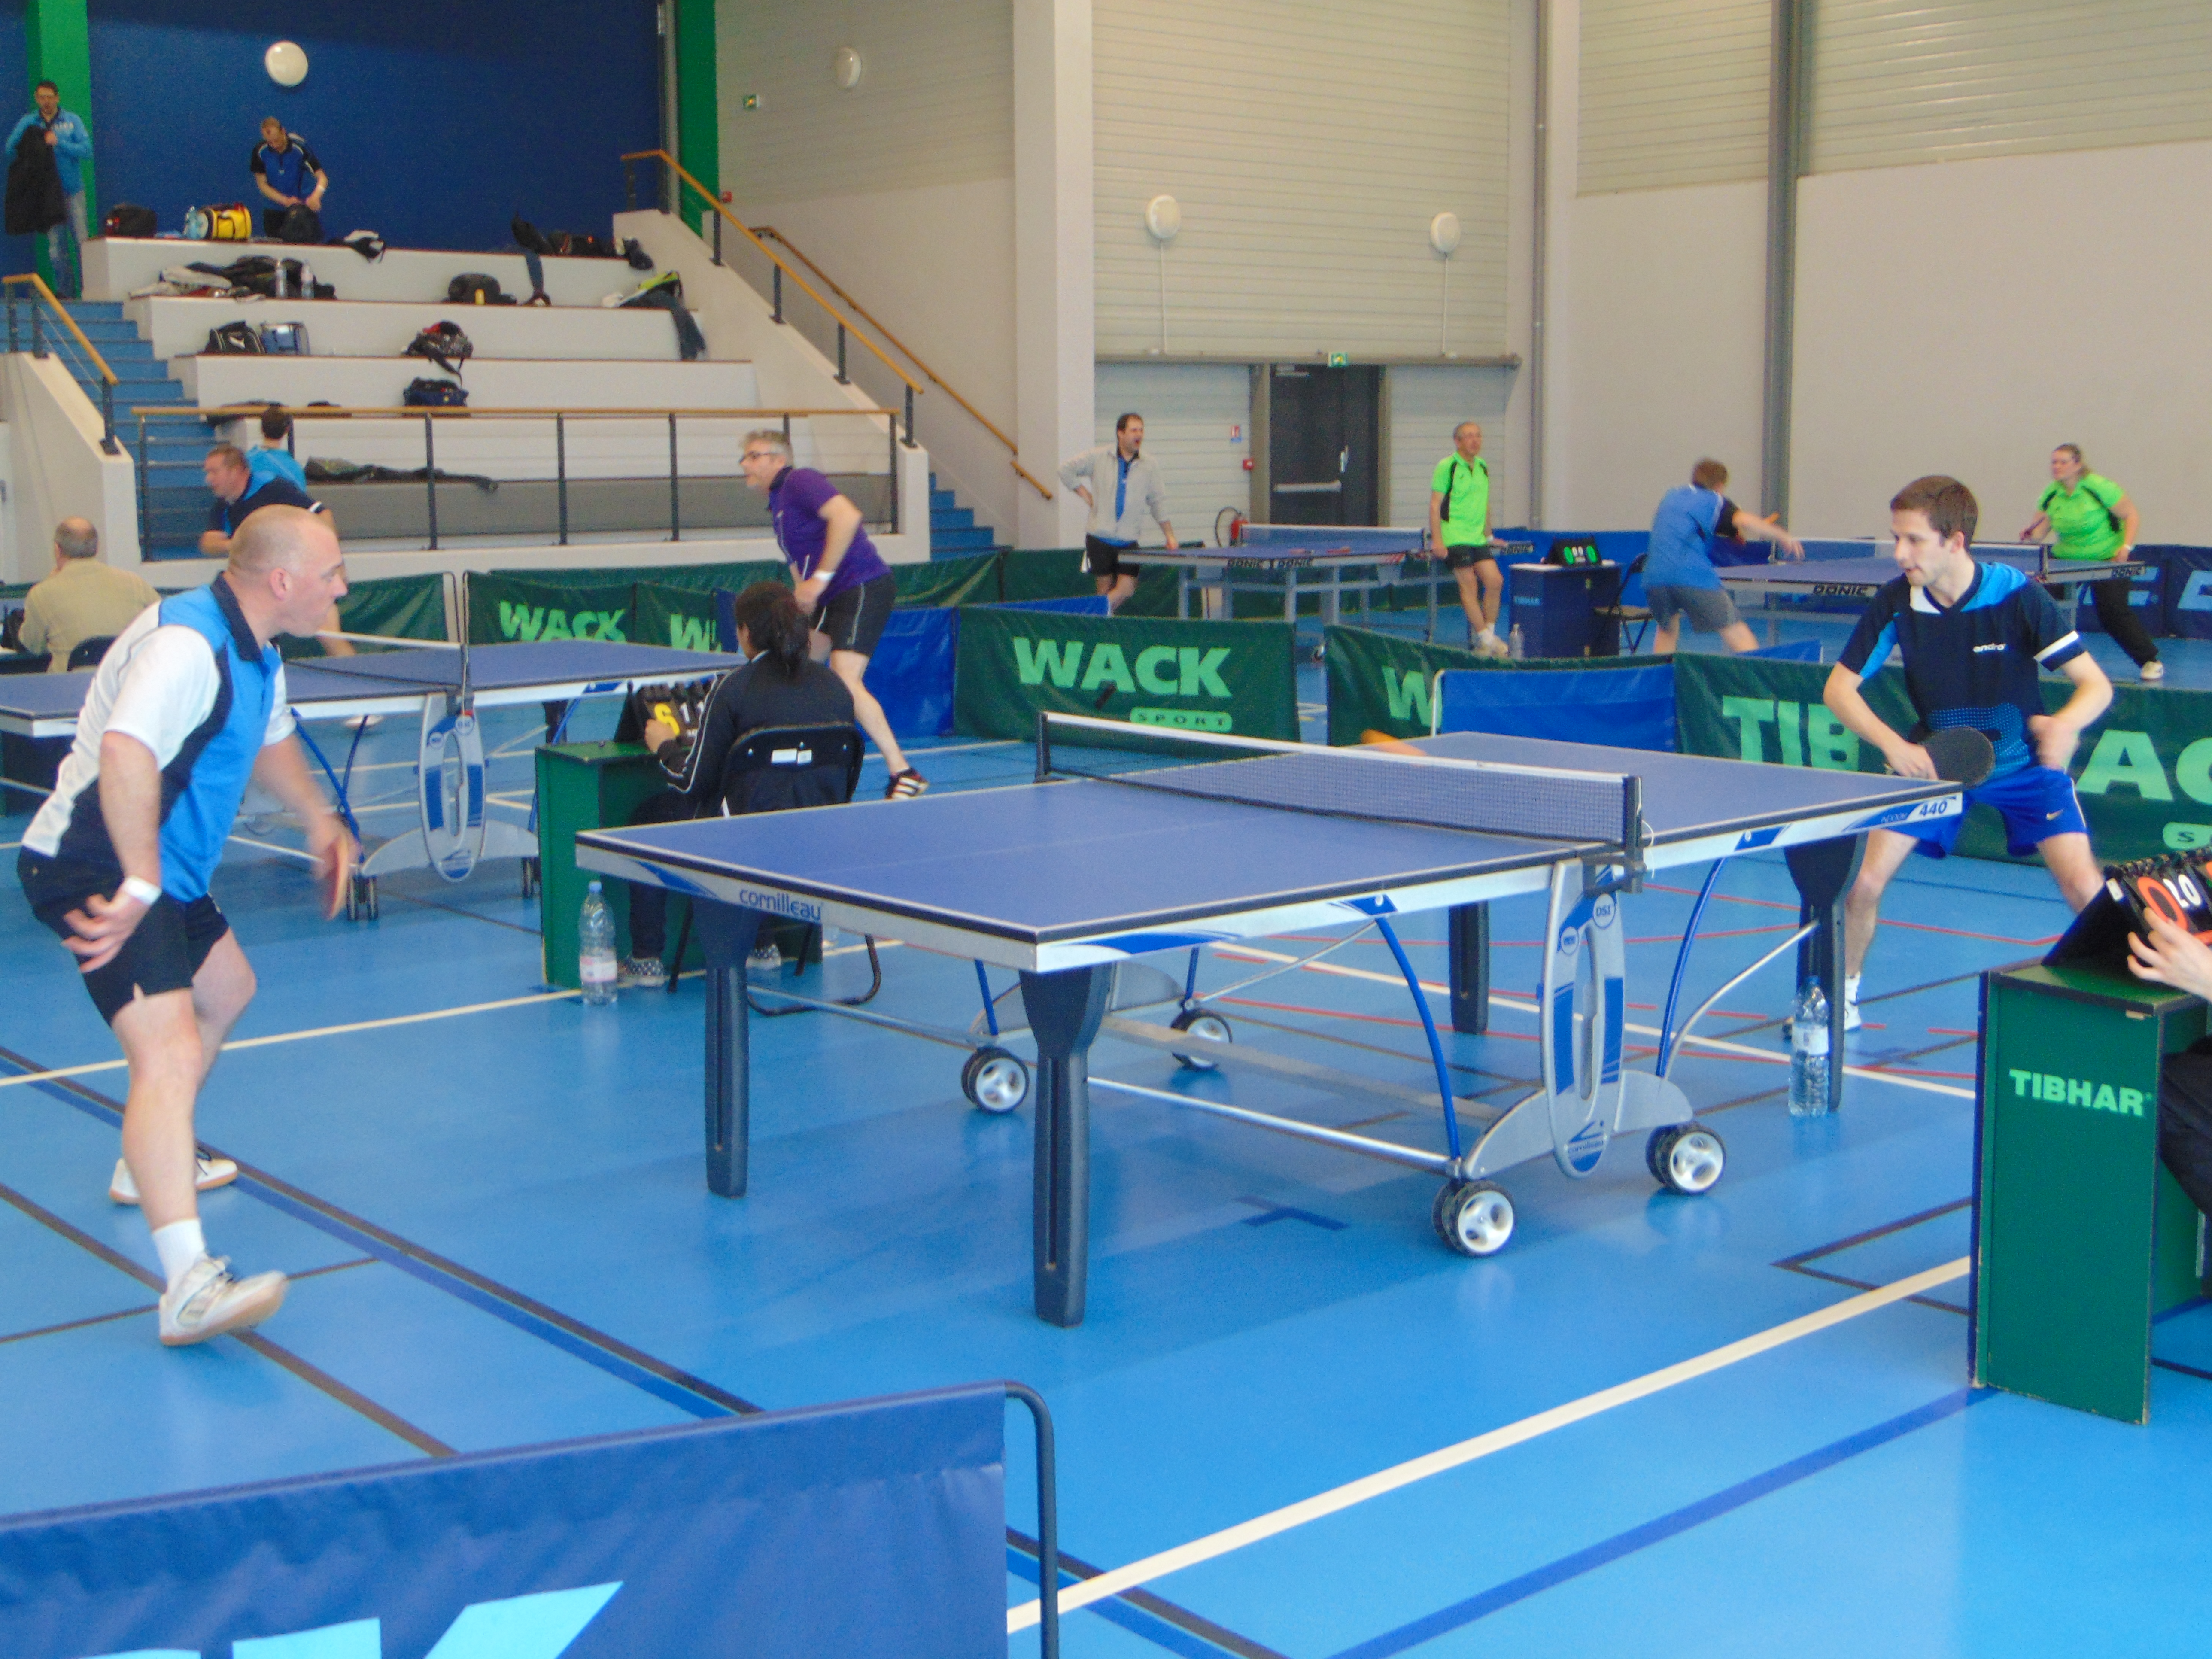 Wack Sport Tennis De Table Tennis De Table Les Raquettes De Magny